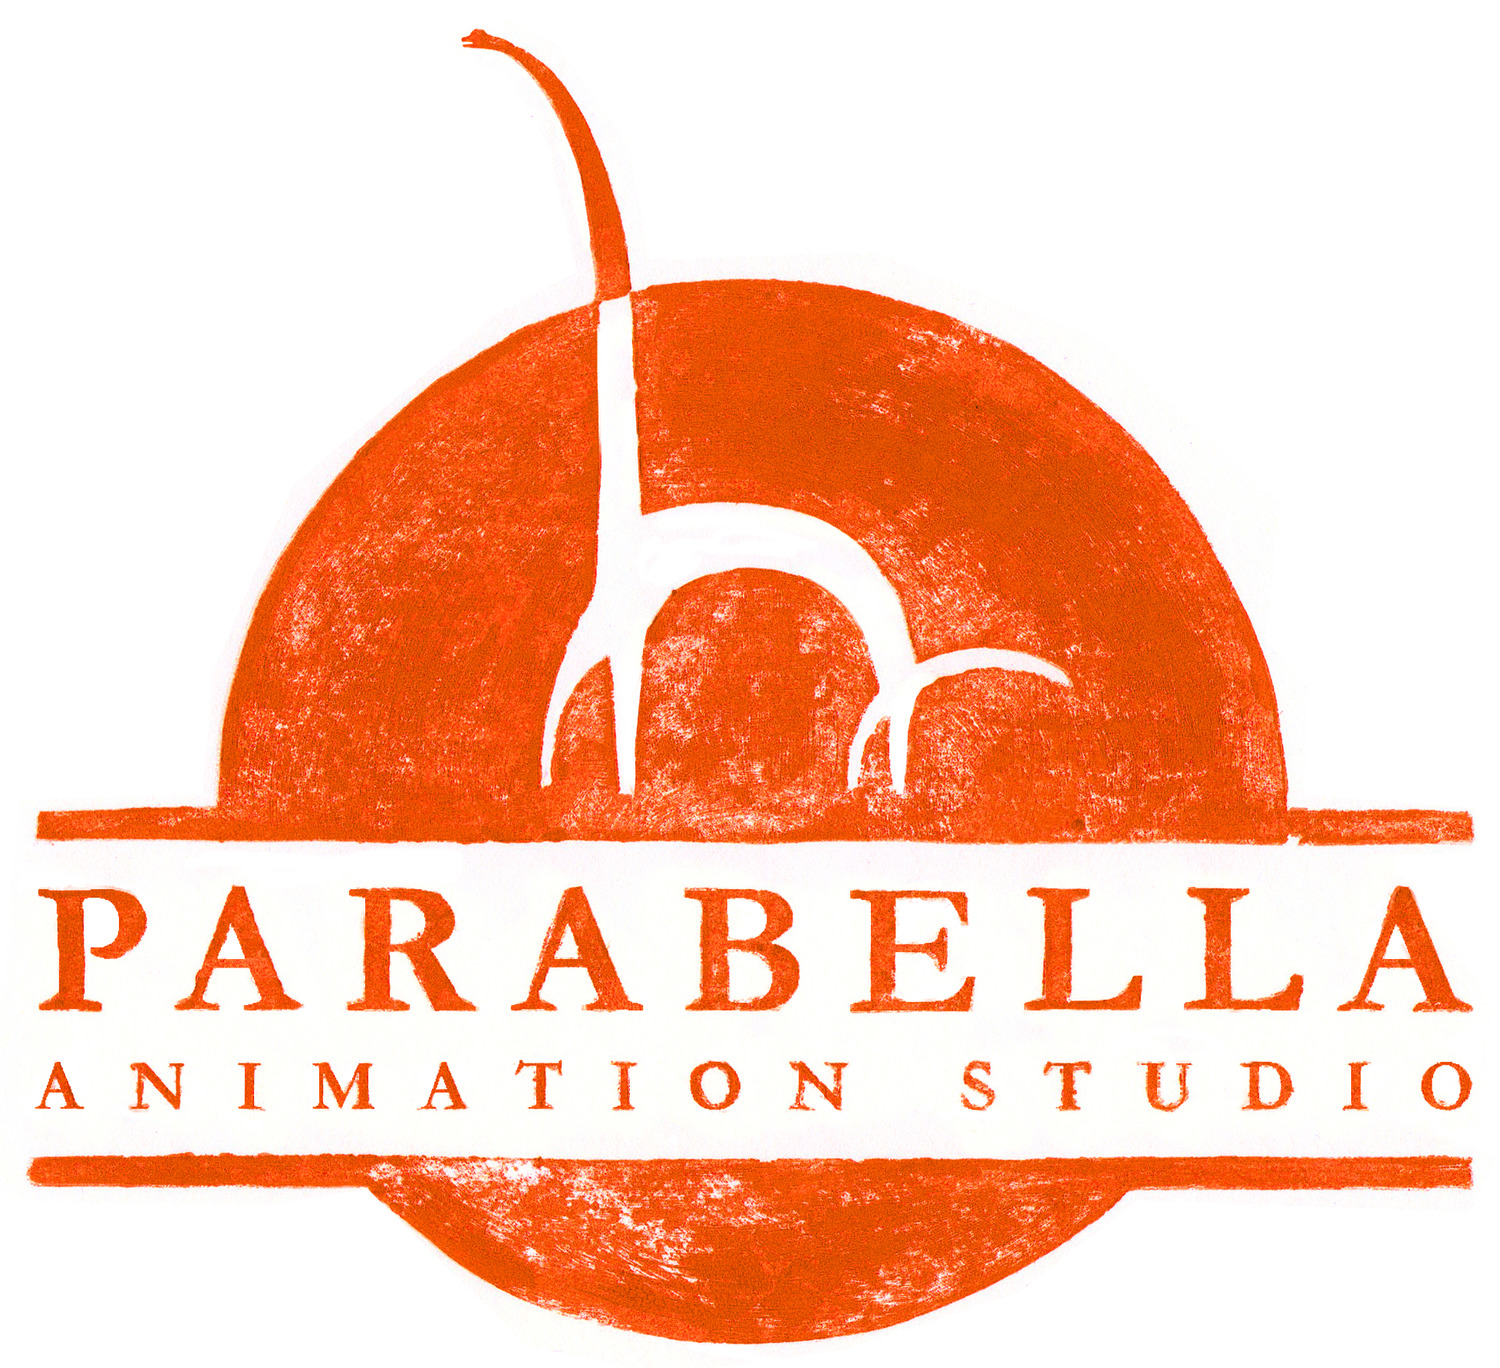 PARABELLA ANIMATION STUDIO